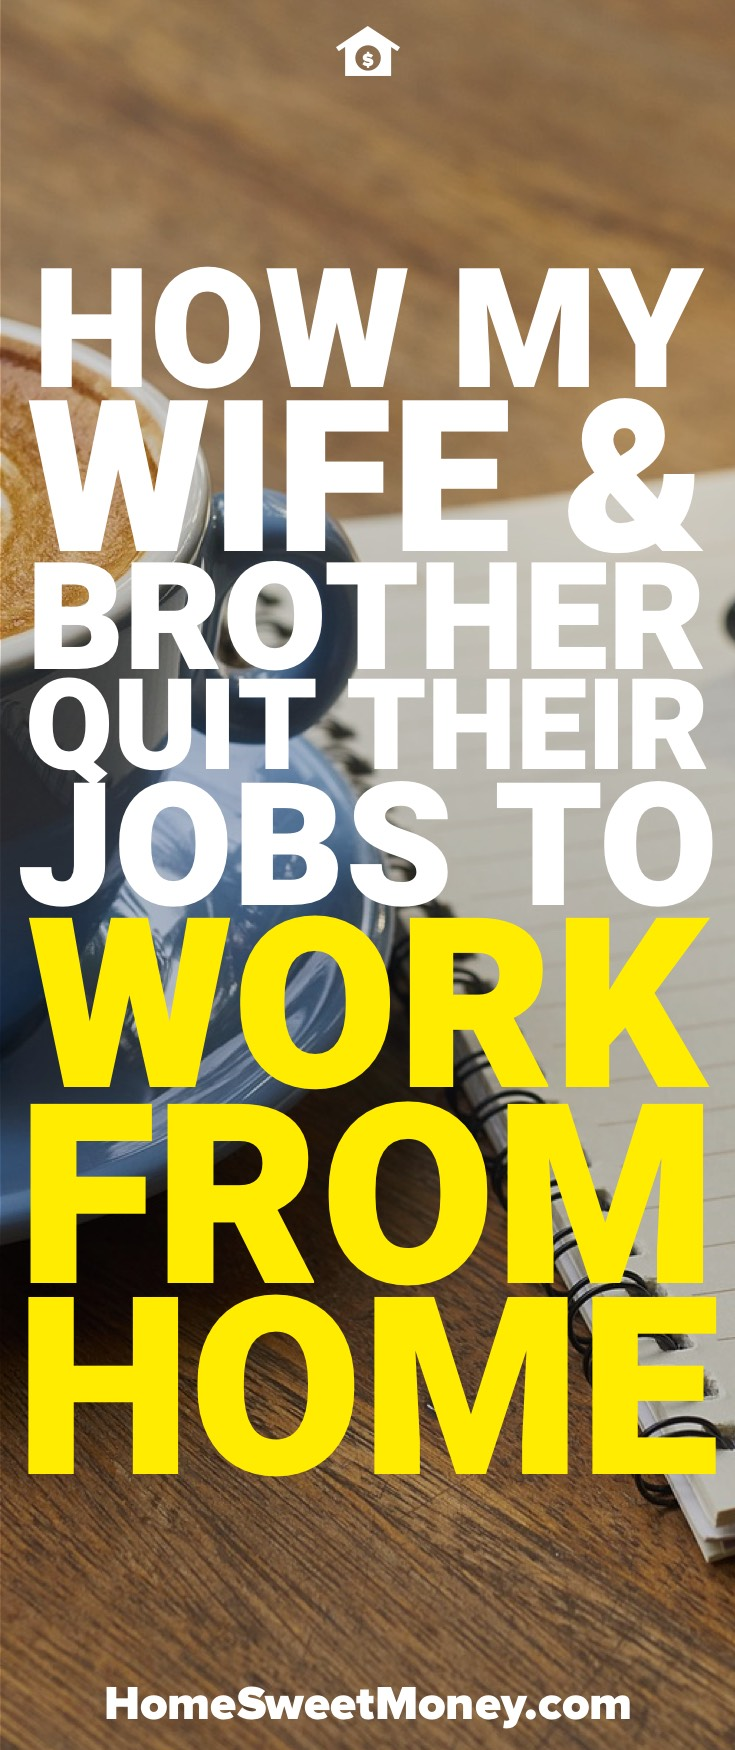 How My Wife and Brother Quit Their Jobs to Work From Home